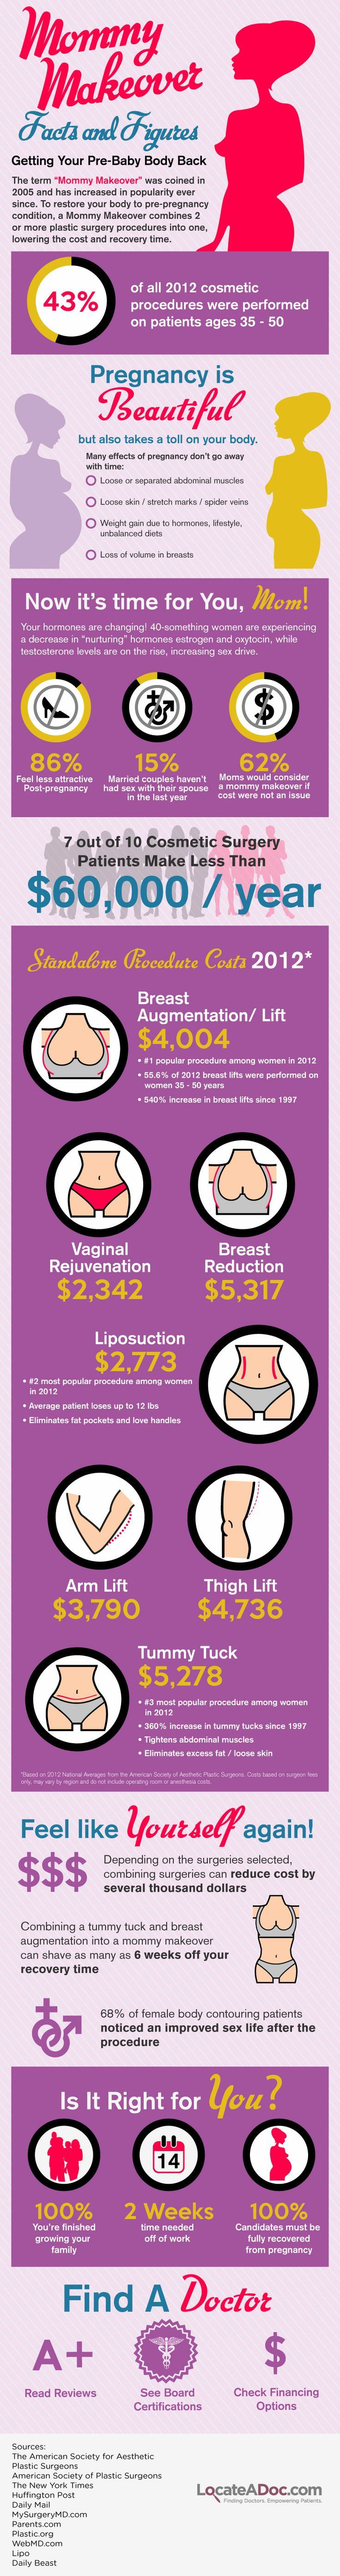 Aesthetic Surgical Images Mommy Makeover Cost